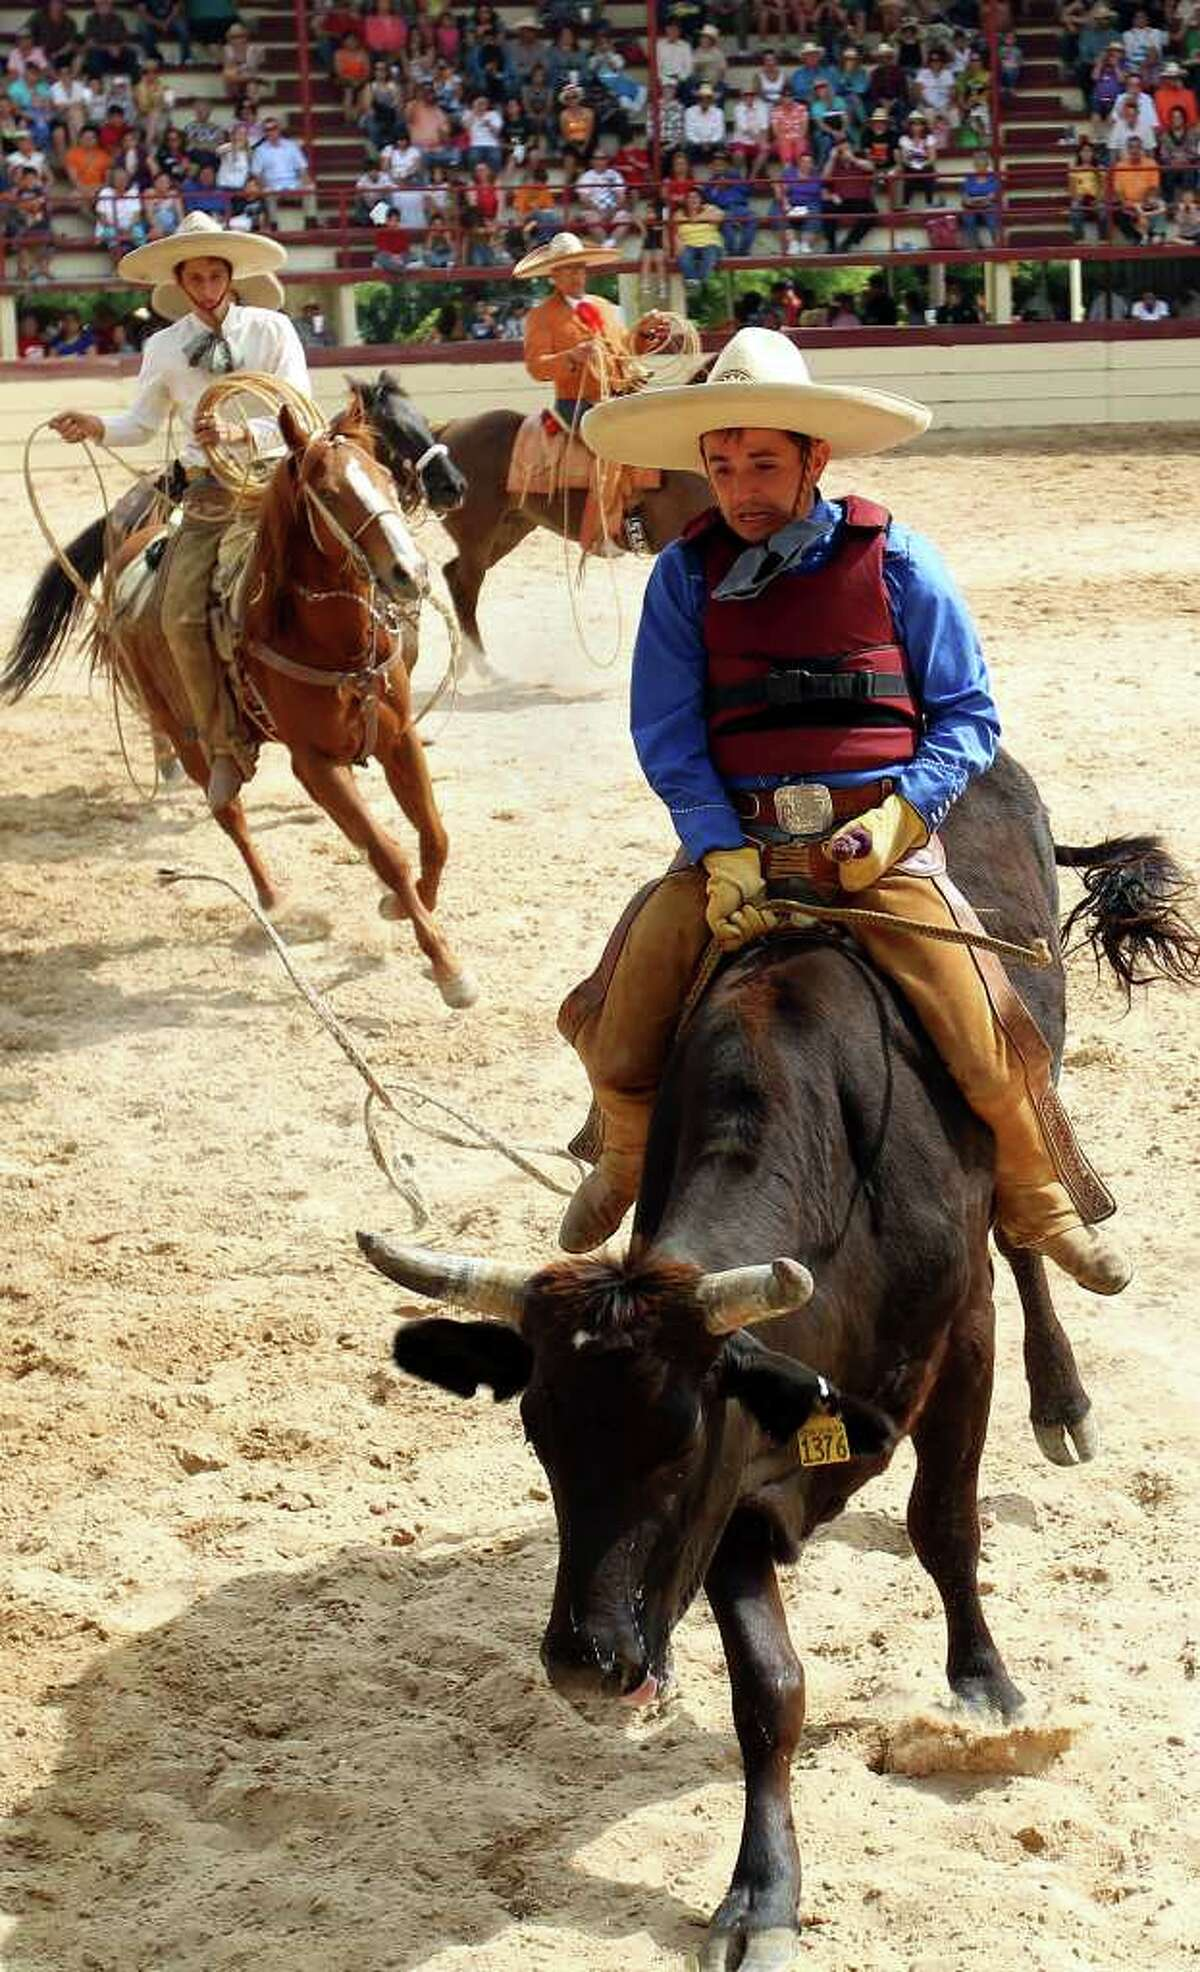 Bull rider Augustine Cervantes nears the end of his ride during the Fiesta Charreada at the San Antonio Charro Ranch, Sunday, April 17, 2011. (Jennifer Whitney/ Special to the San Antonio Express-News)